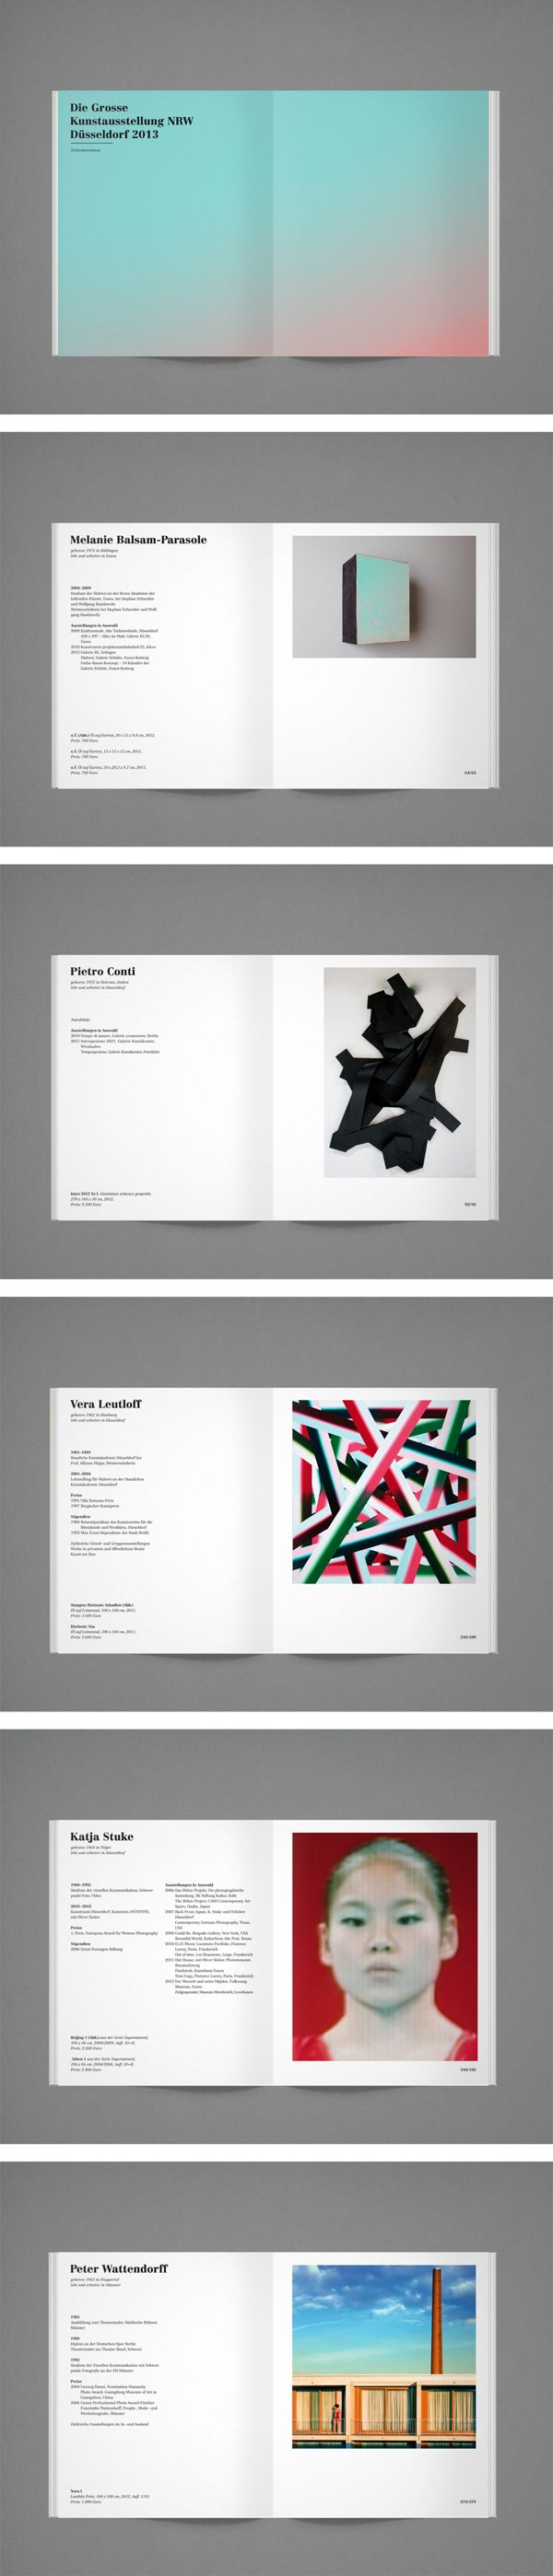 DIE GROSSE Kunstausstellung NRW - Exhibition Catalogue by MORPHORIA DESIGN COLLECTIVE